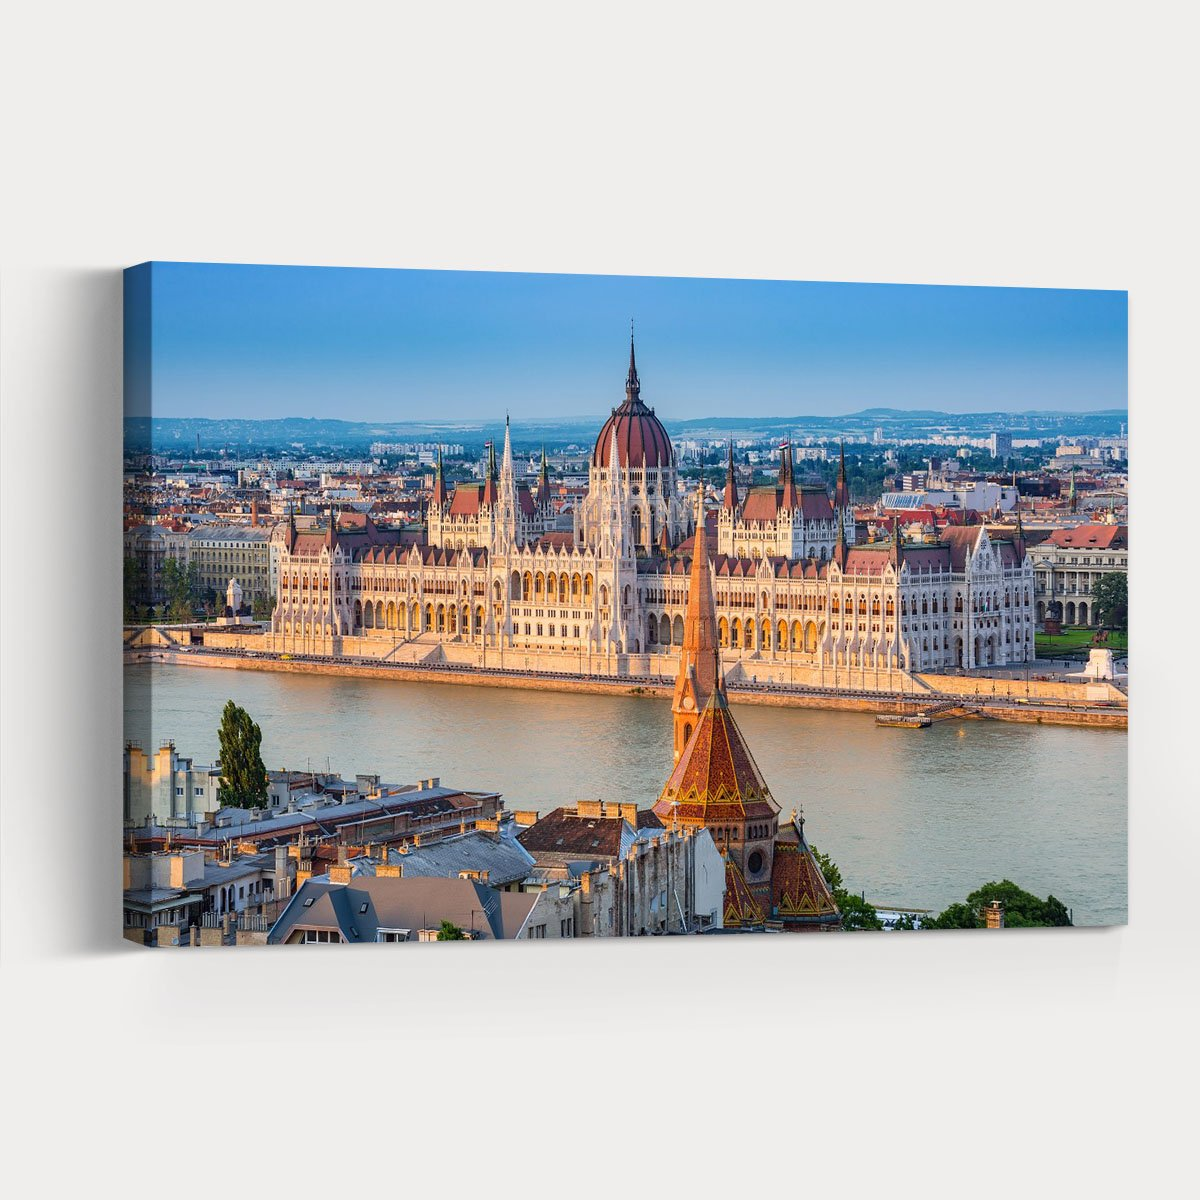 Budapest, capital of Hungary City Scenery Decorative Painting 002